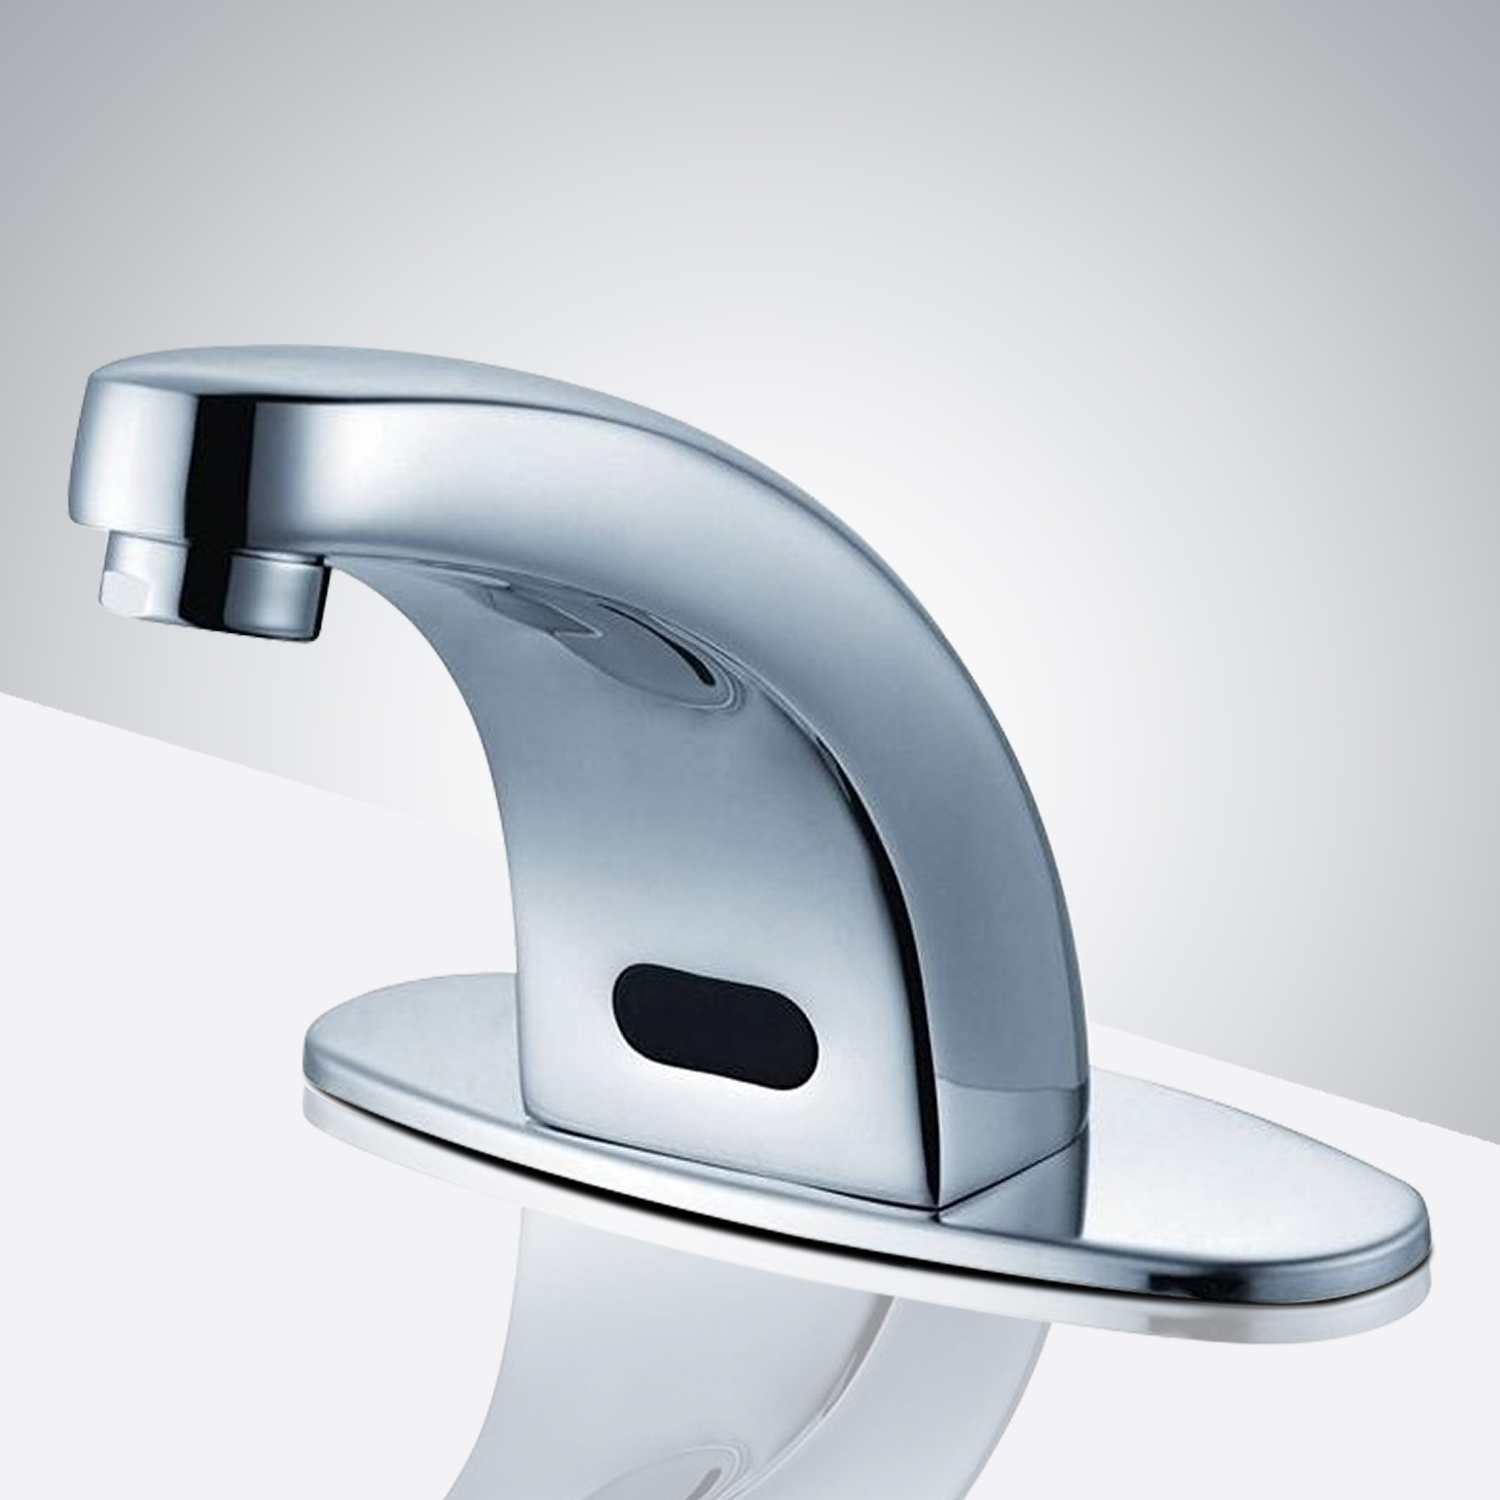 Salina Touchless Solid Brass Sensor Faucet Larger Photo Email A Friend